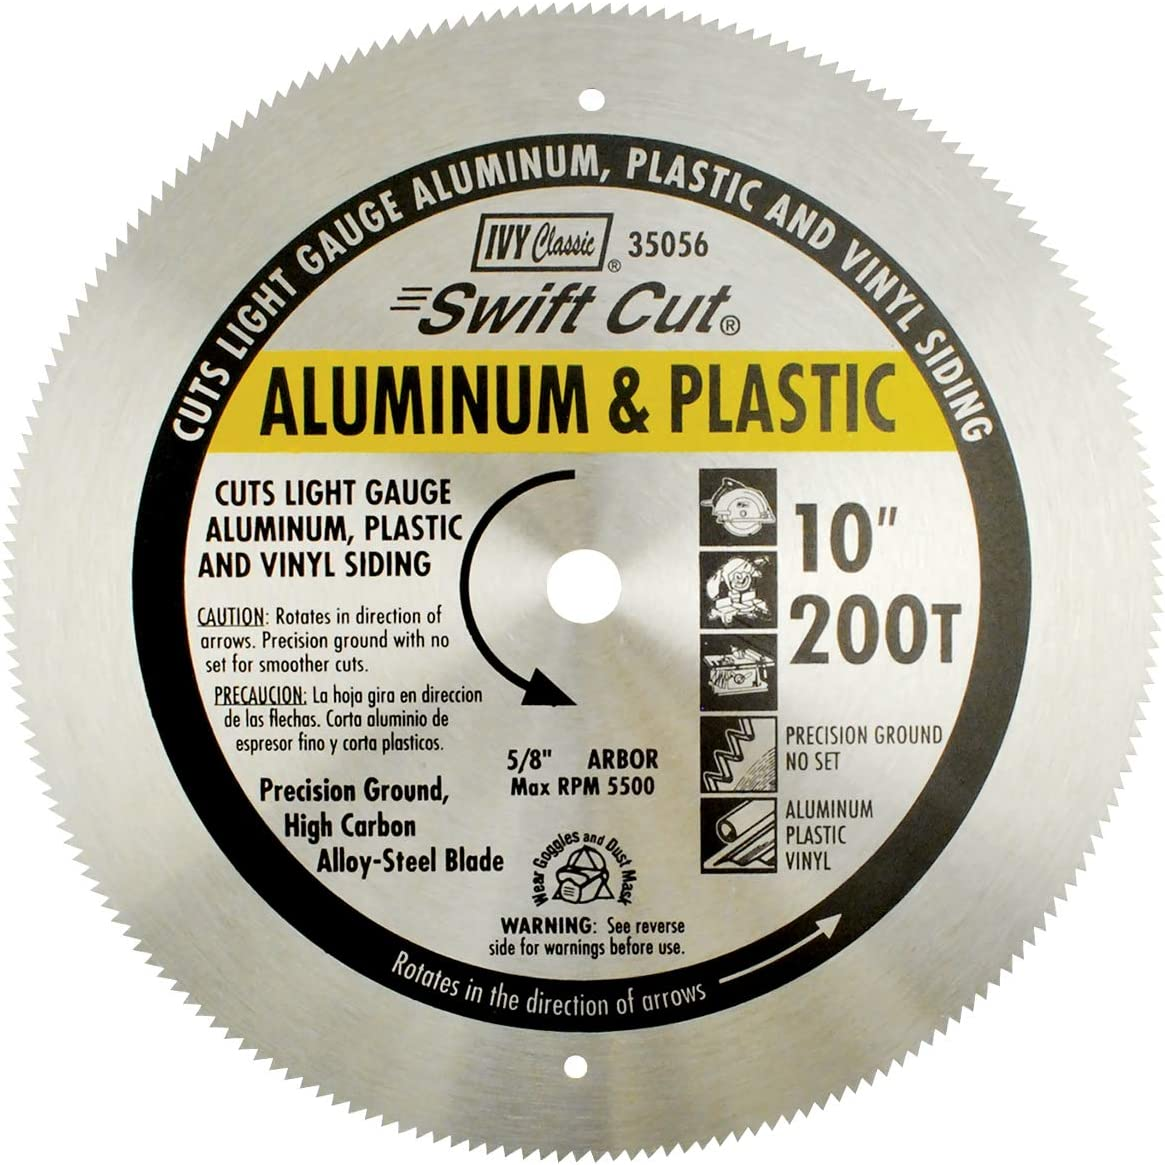 """IVY Classic 35056 Swift Cut 10"""" 200 Tooth Aluminum & Plastic Cutting Circular Saw Blade with 5/8"""" Arbor, 1/Card"""